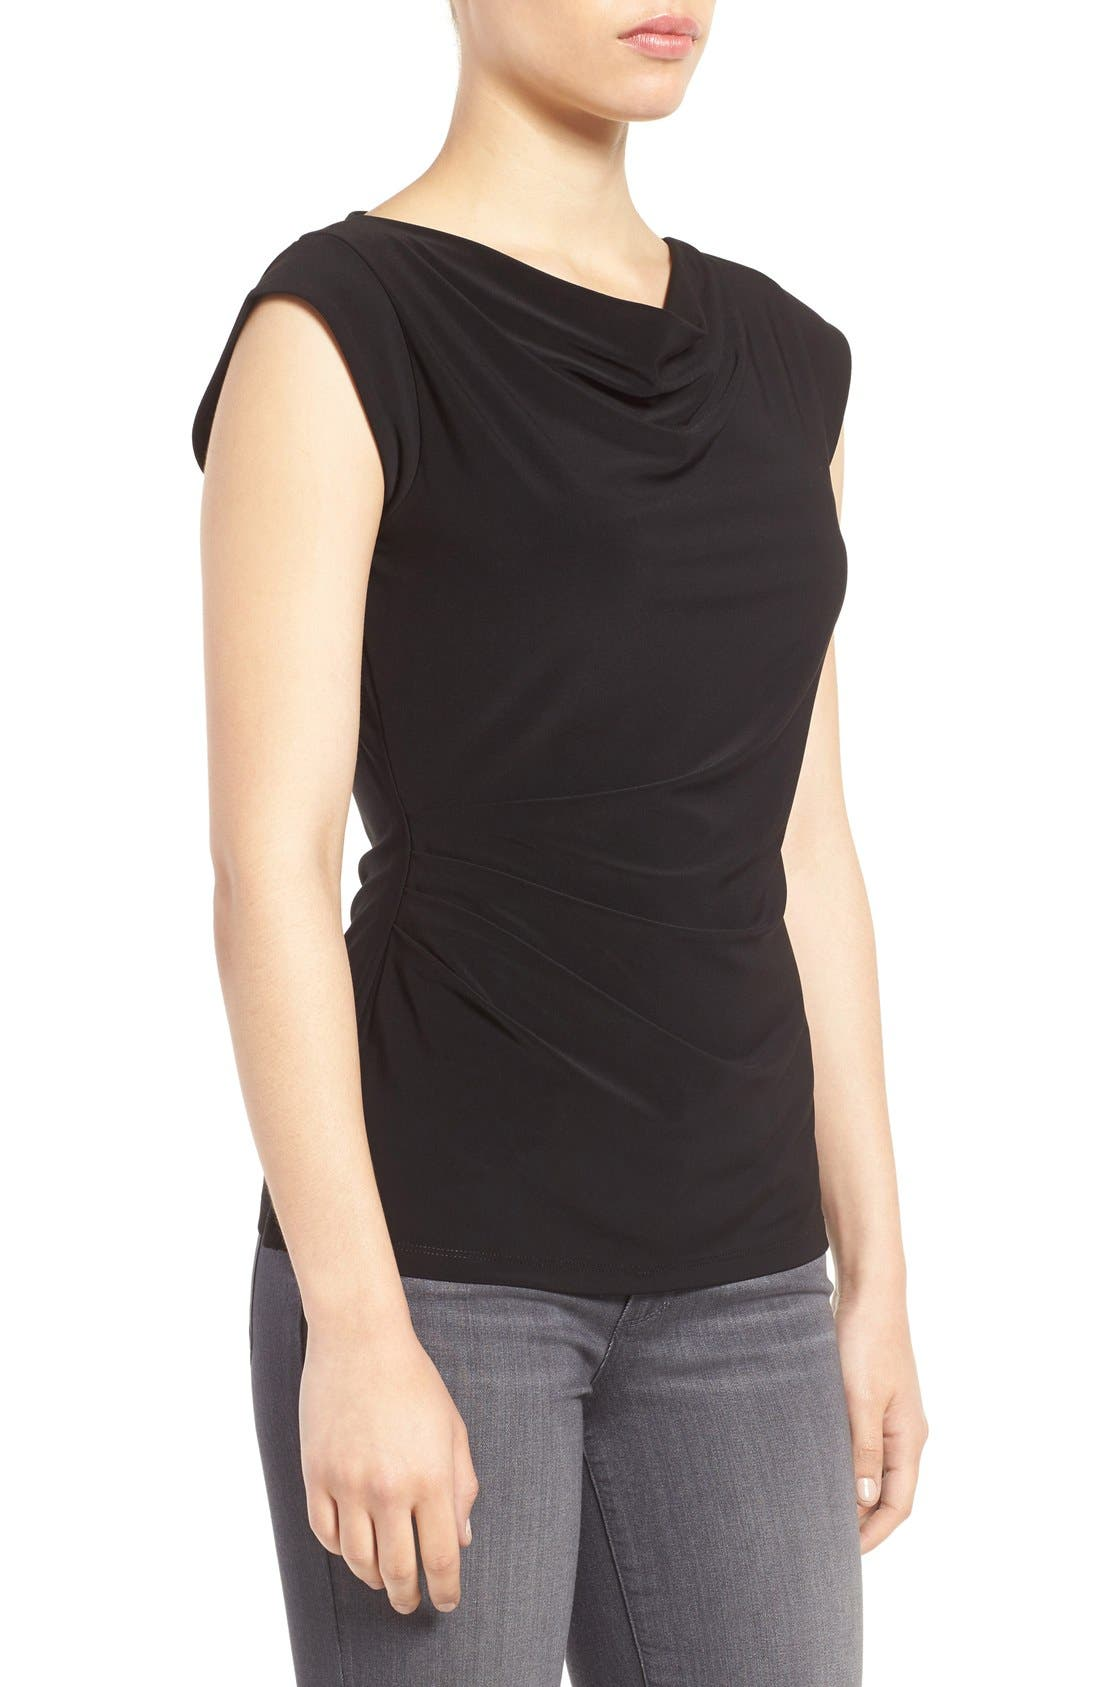 ANNE KLEIN,                             Cowl Neck Shell,                             Alternate thumbnail 4, color,                             001